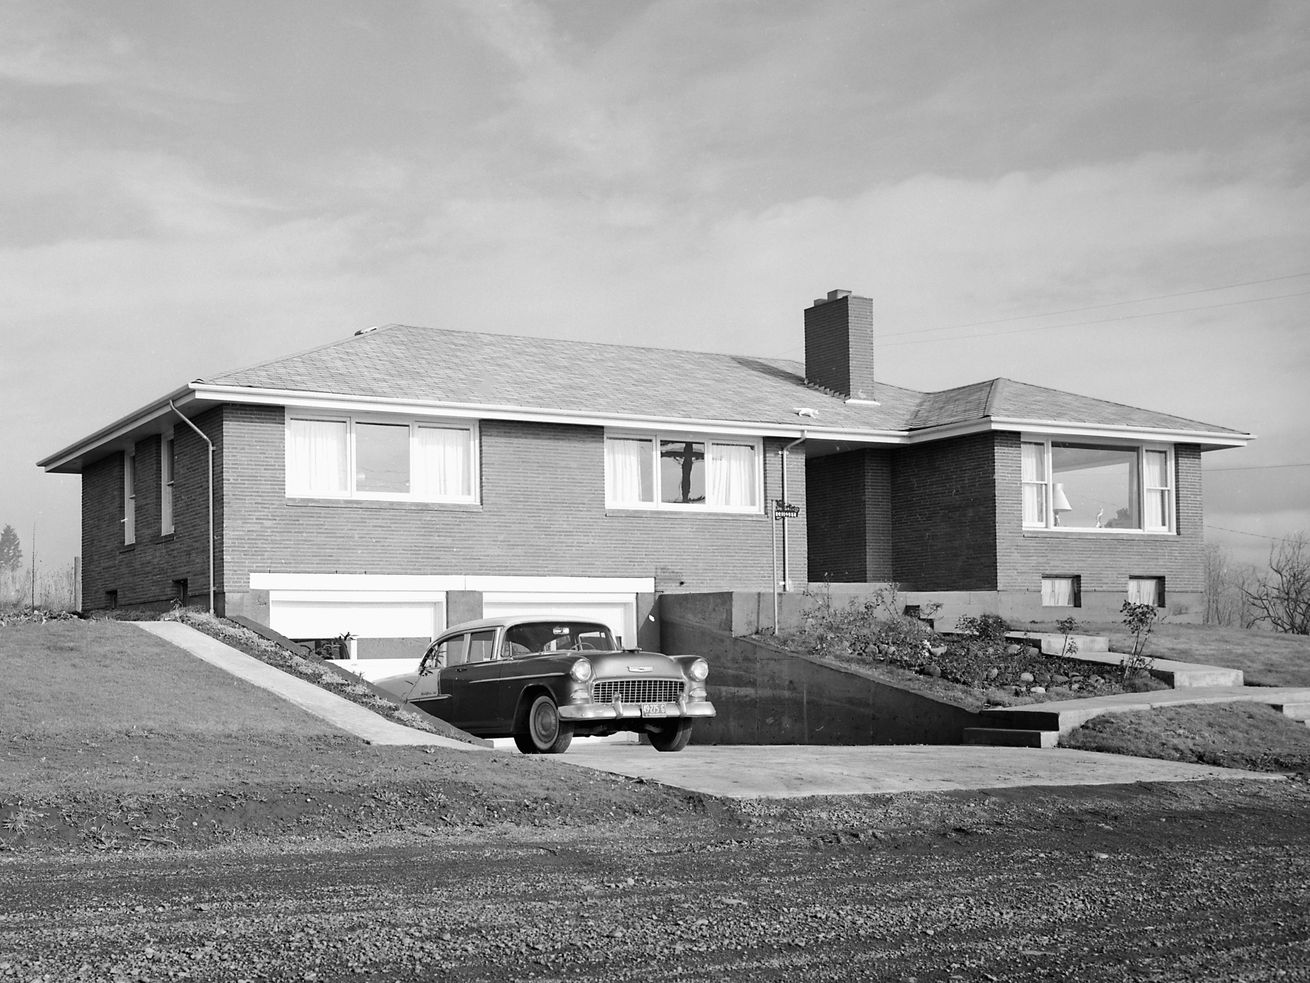 Chevrolet automobile in the driveway of a new home in Washington state in 1957.